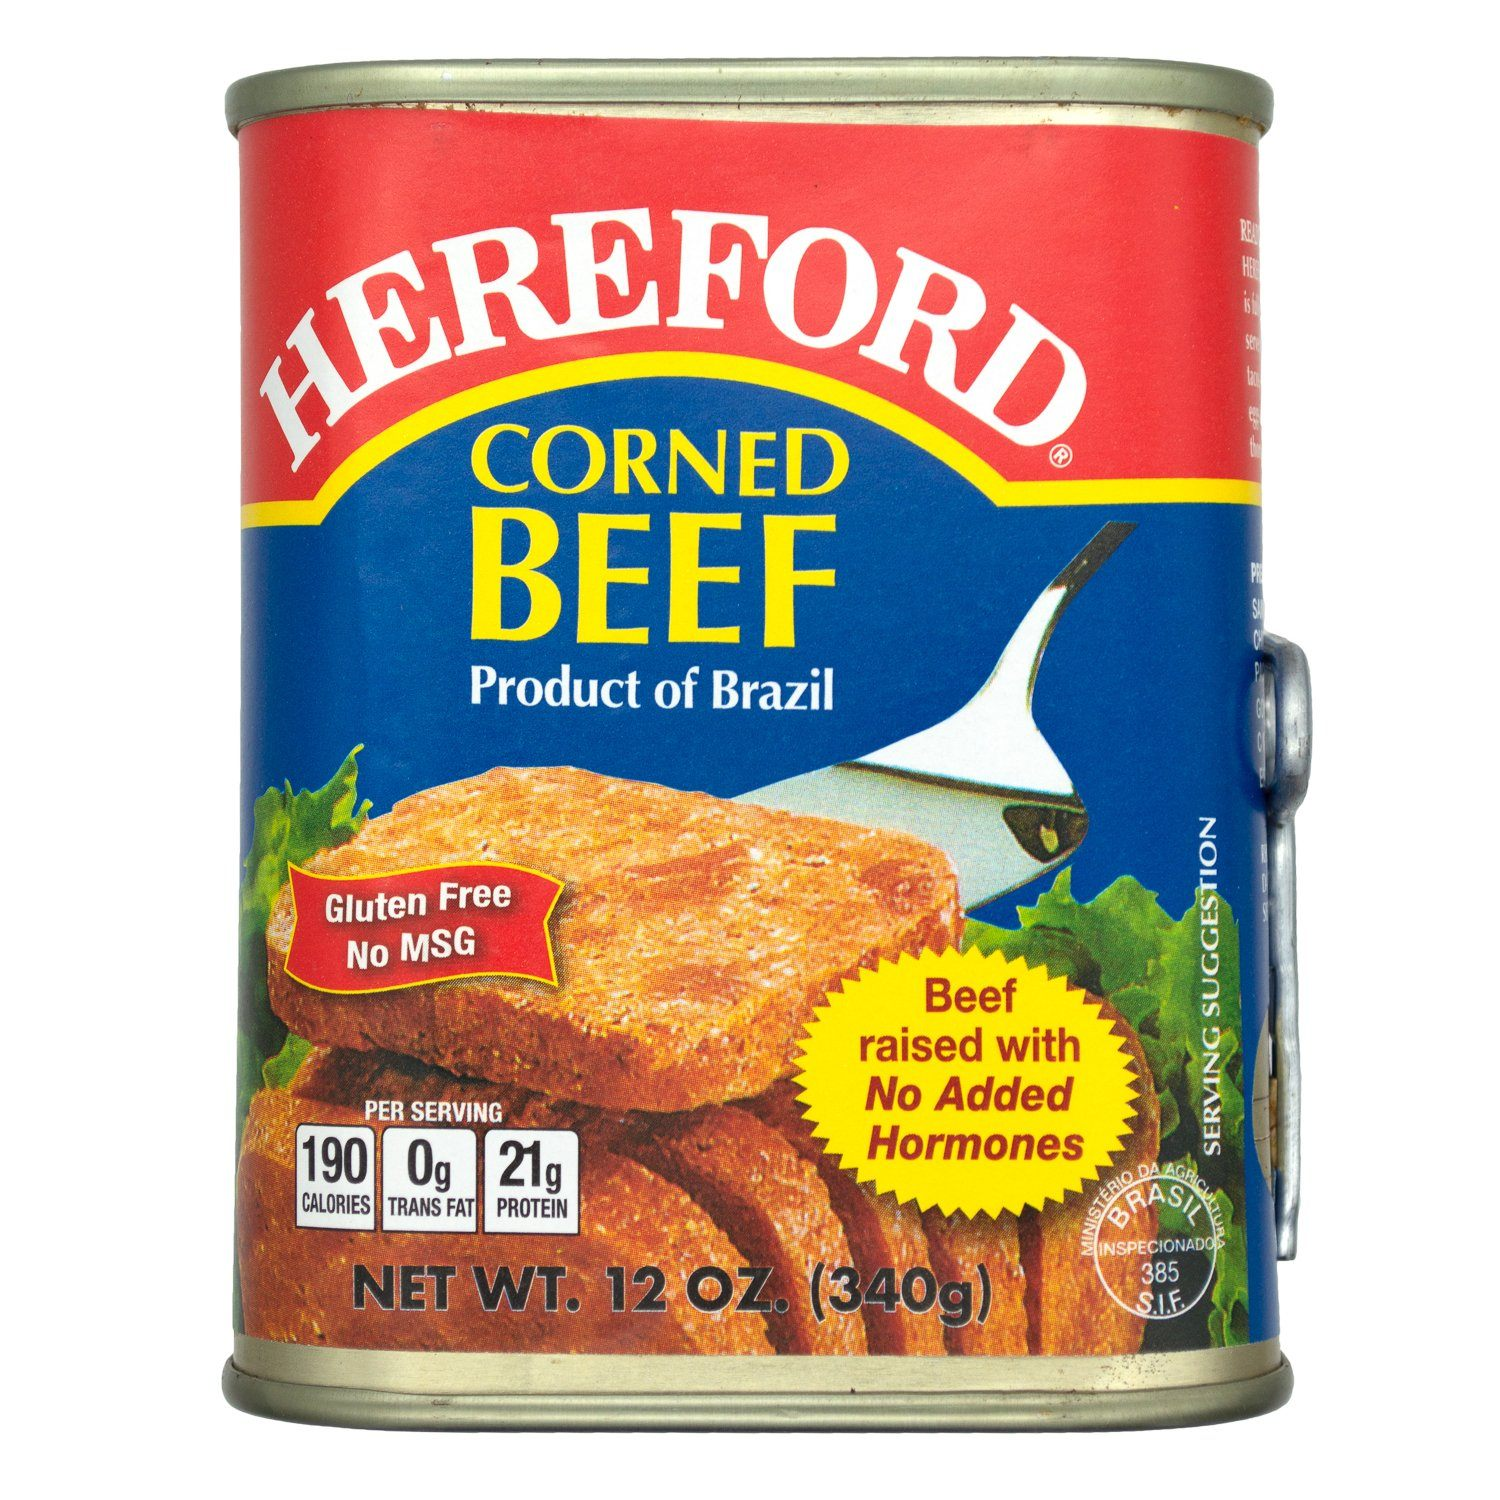 Hereford Corned Beef Hereford Original 12 Ounce